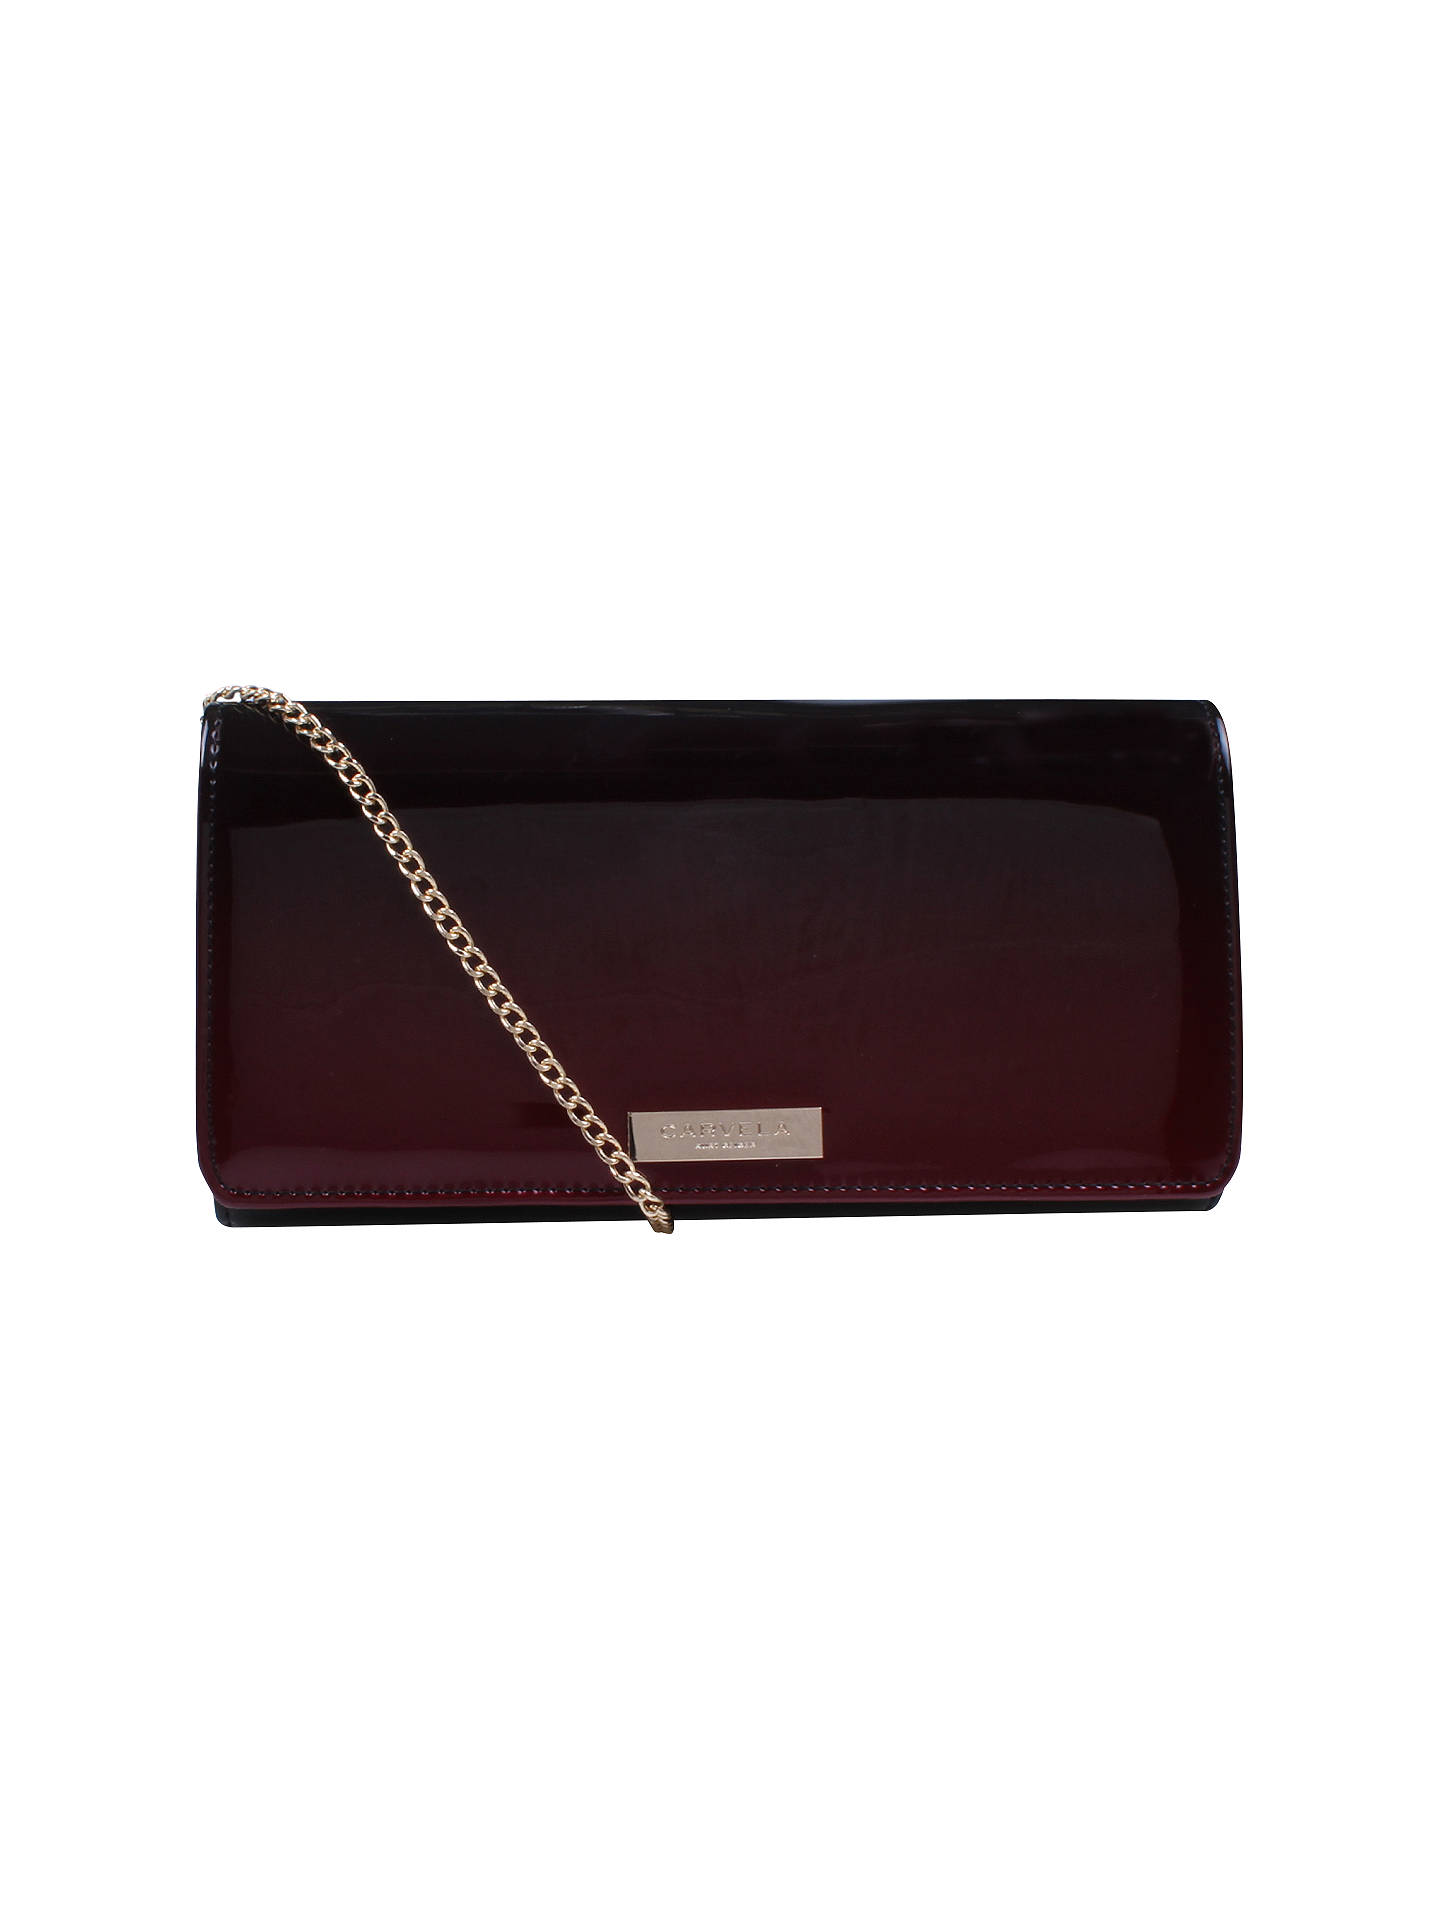 official store famous designer brand reasonable price Carvela Alice Clutch Bag, Wine